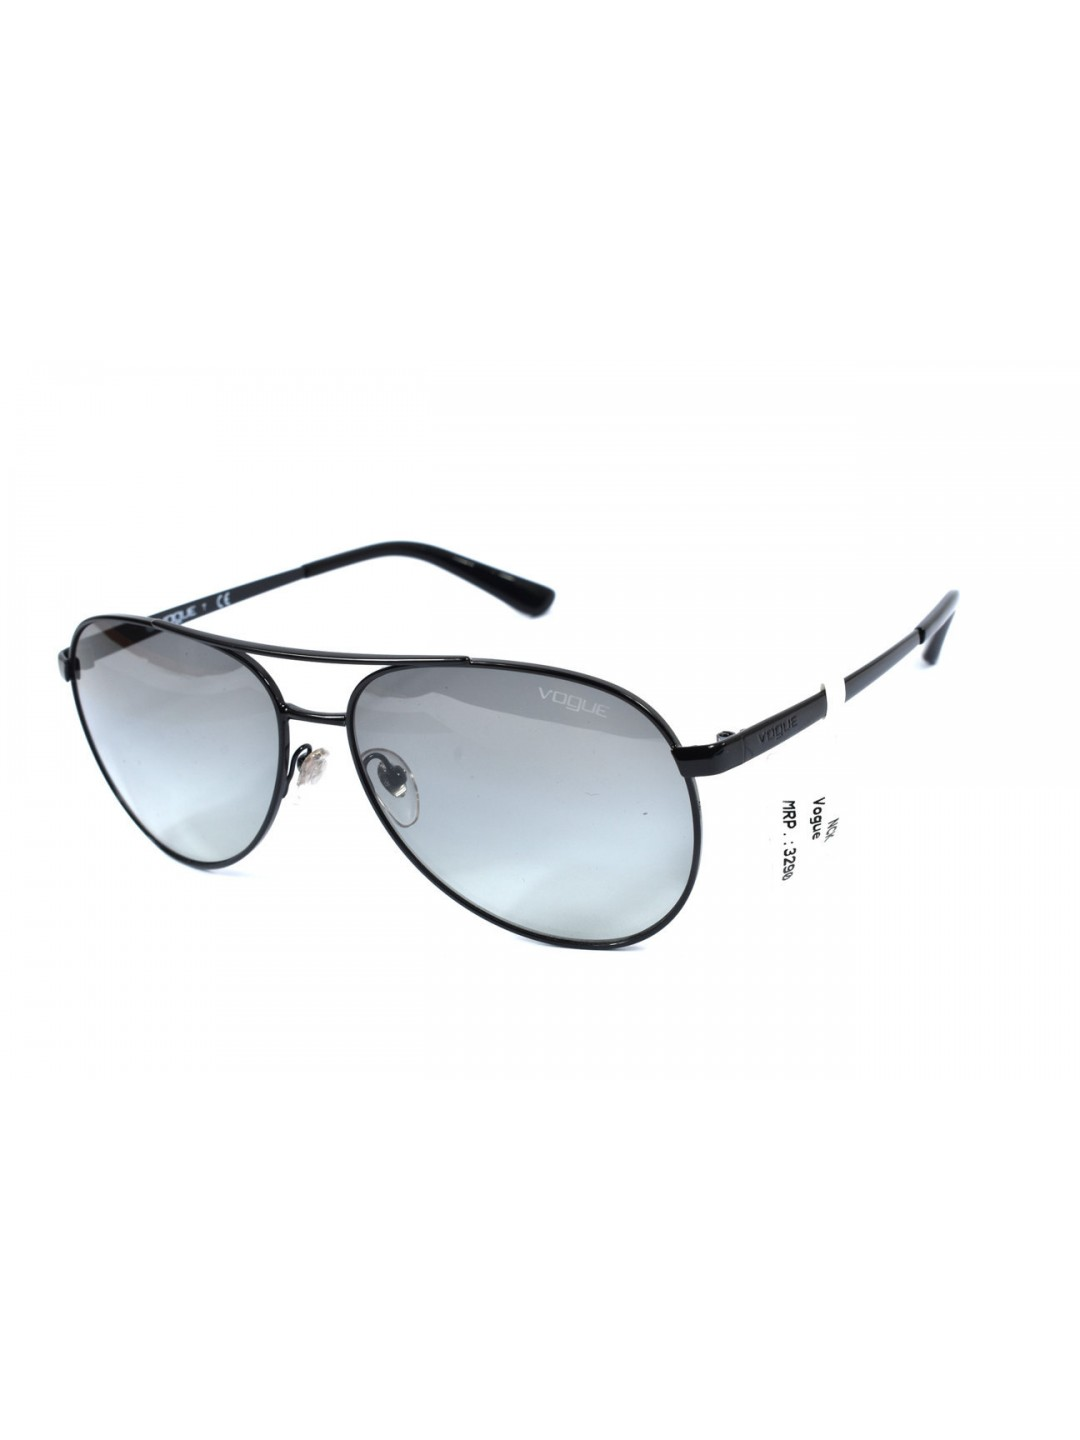 Vogue VO 3991-SI 352/11 2N Black Aviator With Stainless Steel Full Rim